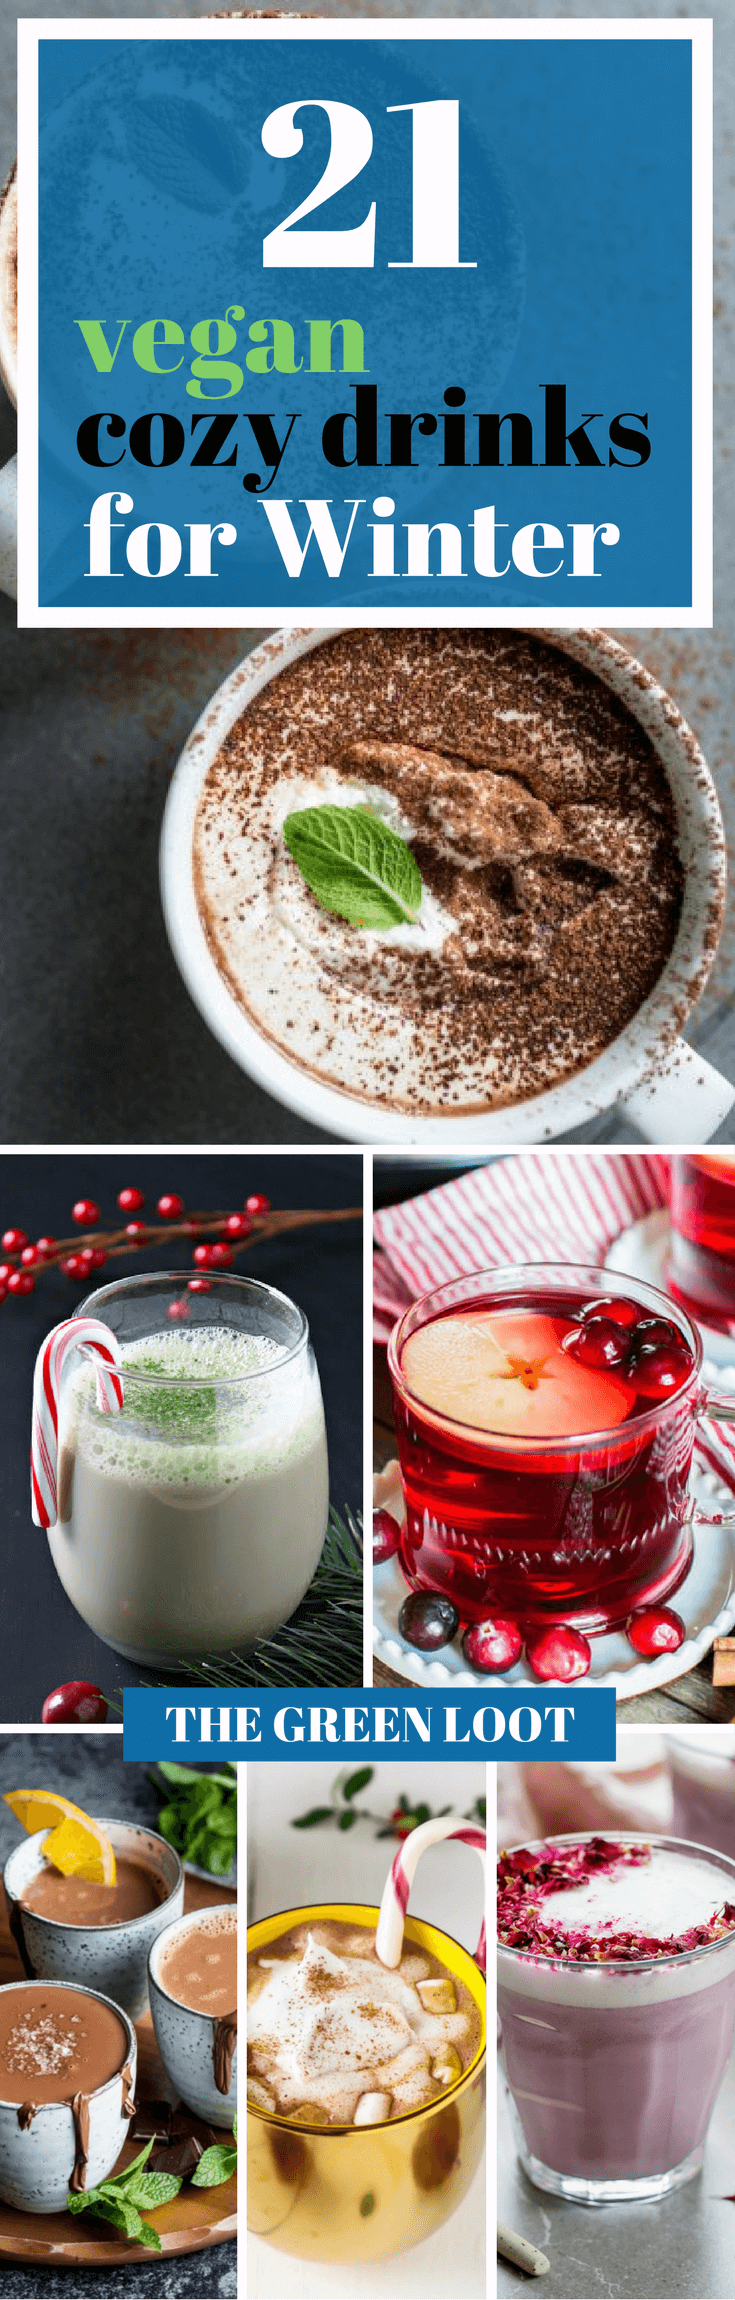 Make these cozy vegan drinks for winter to warm up your soul! From hot chocolate to apple cider, these dairy-free cups are perfect for cold mornings. Enjoy!   The Green Loot ... #vegan #dairyfree